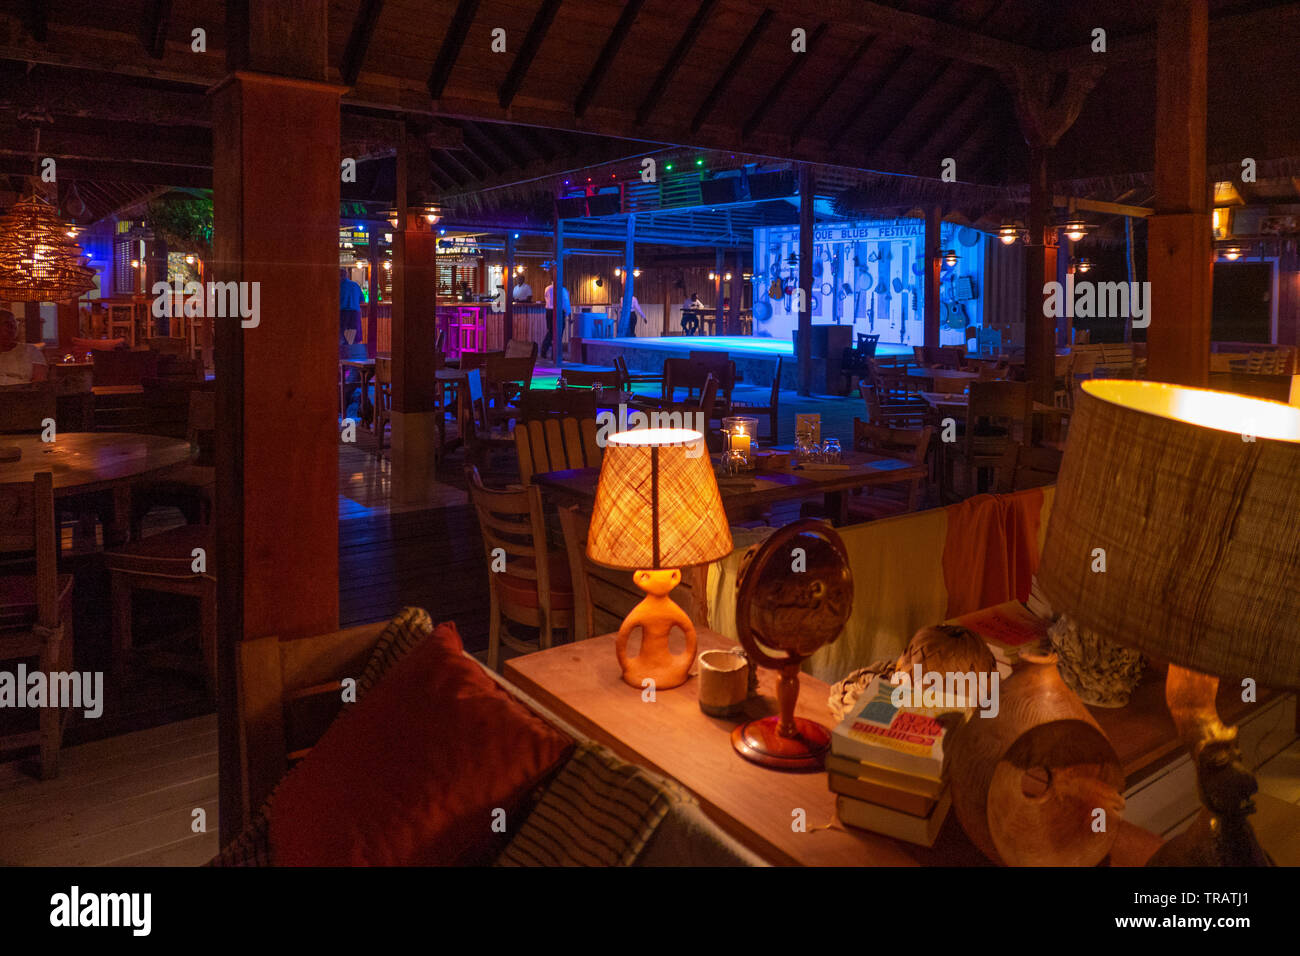 Refurbished Bar And Dance Floor At Basil S Bar Mustique 2019